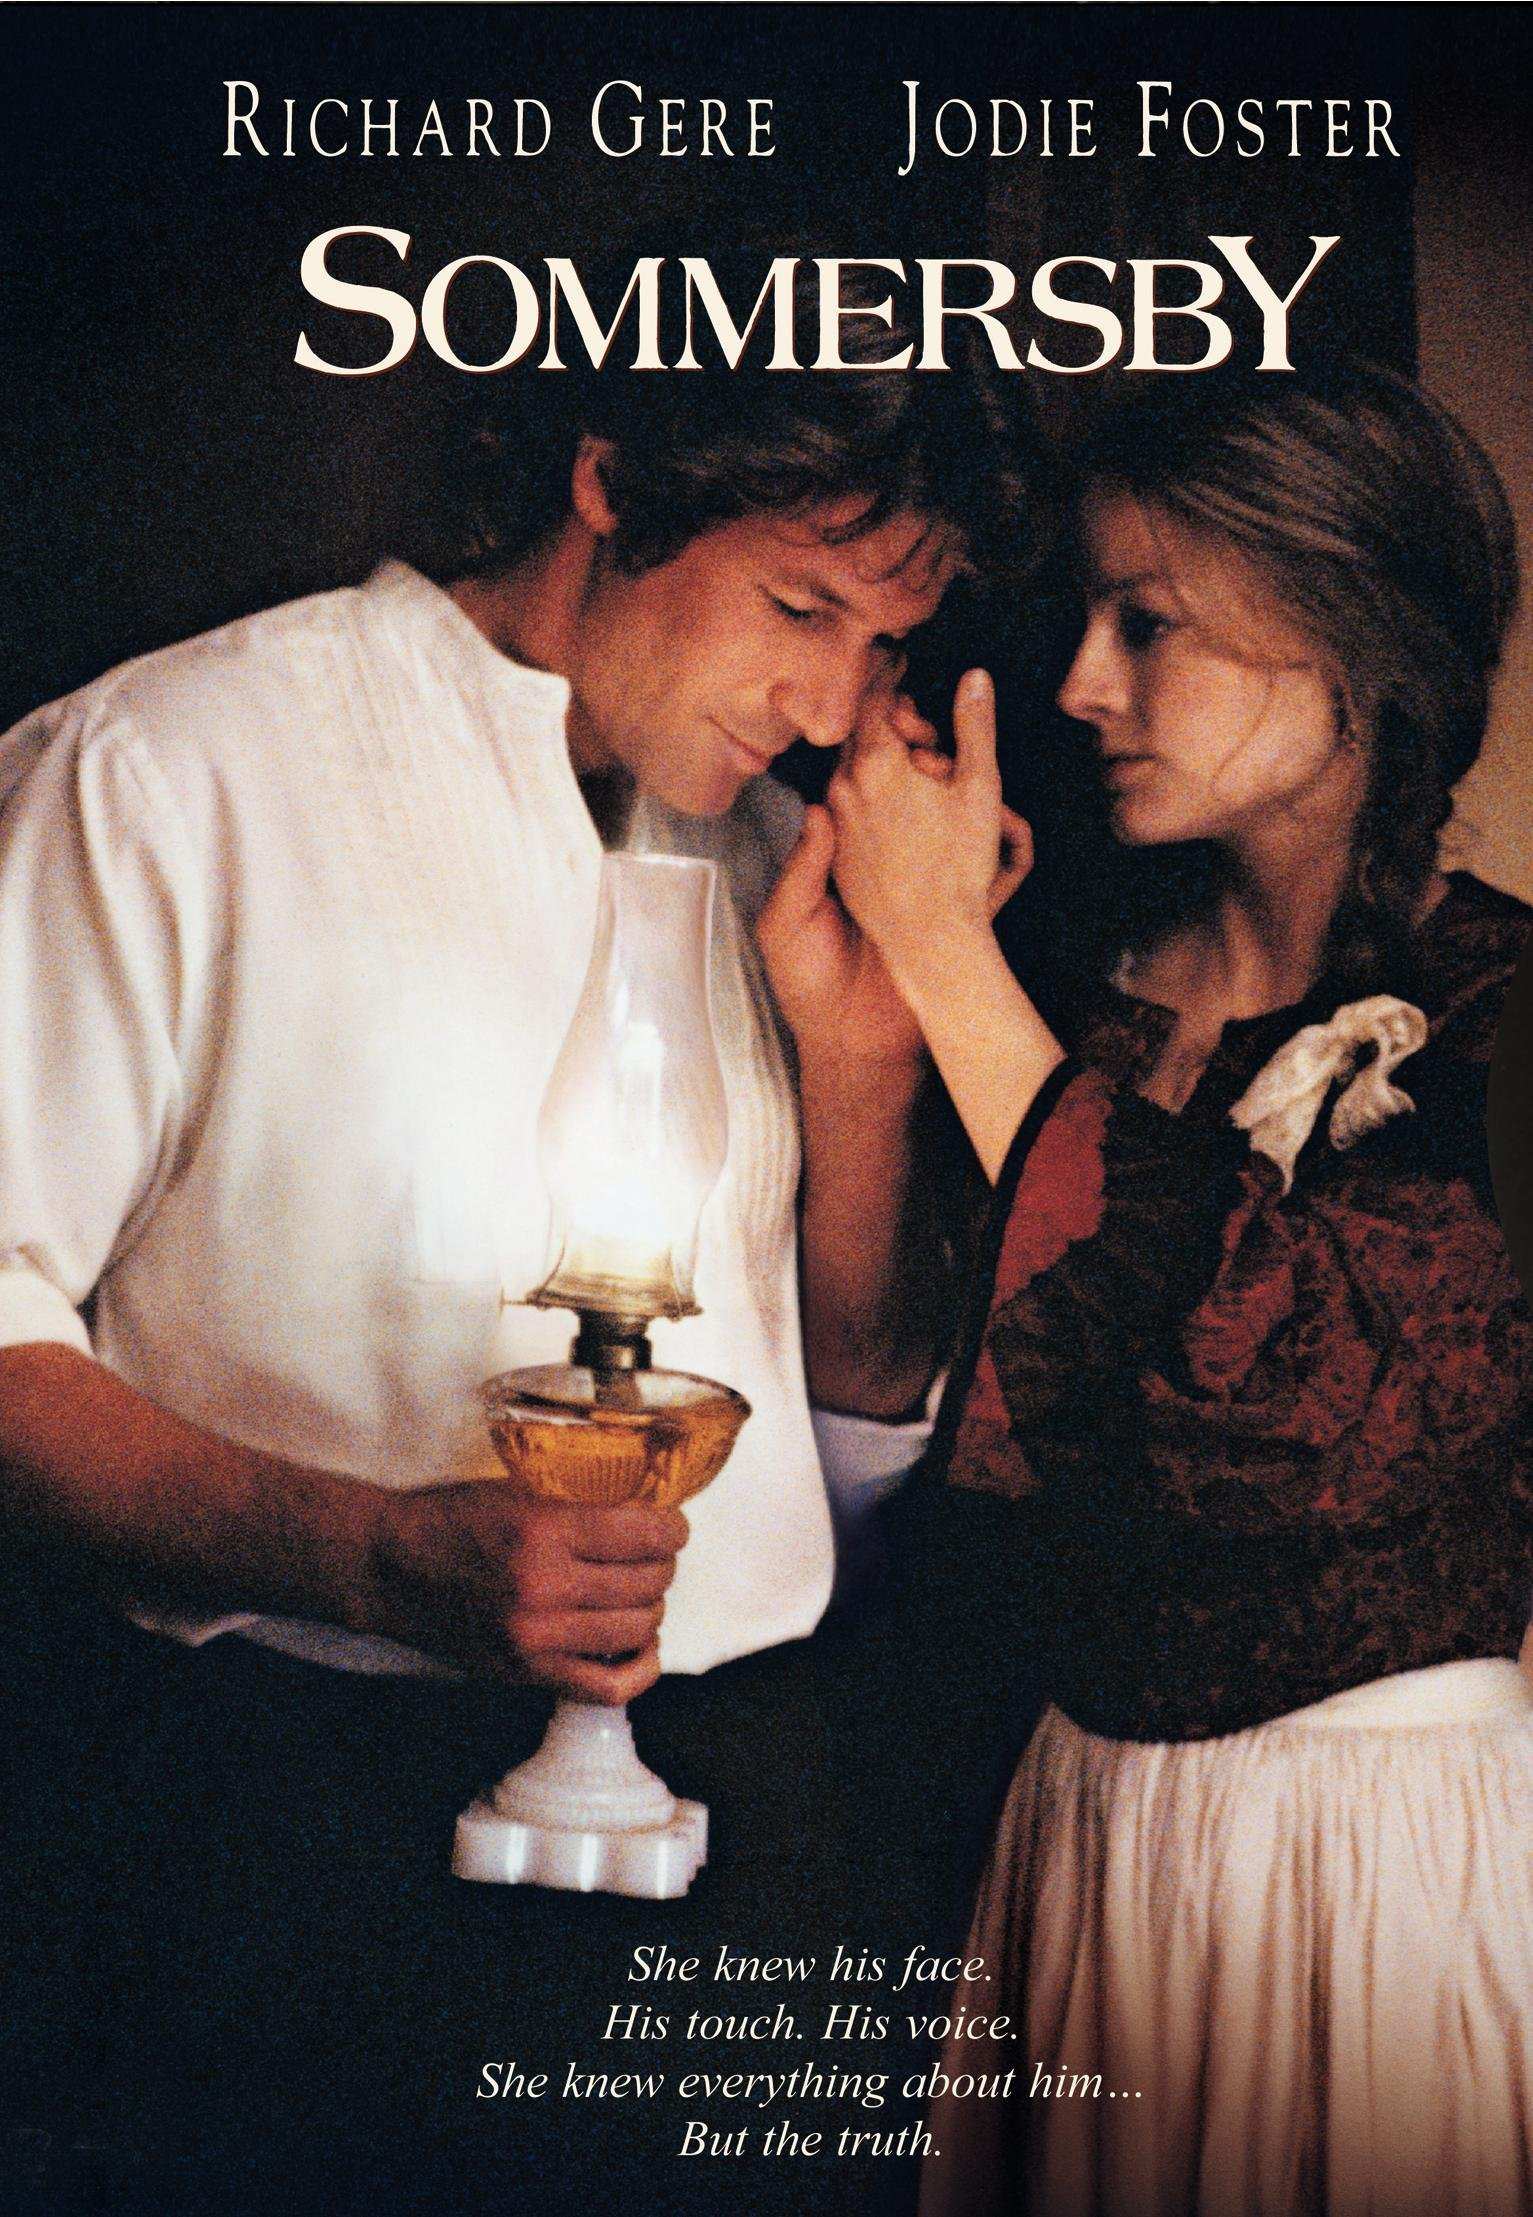 Amazon.com: Sommersby: Richard Gere, Jodie Foster, Bill Pullman, James Earl  Jones: Amazon Digital Services LLC